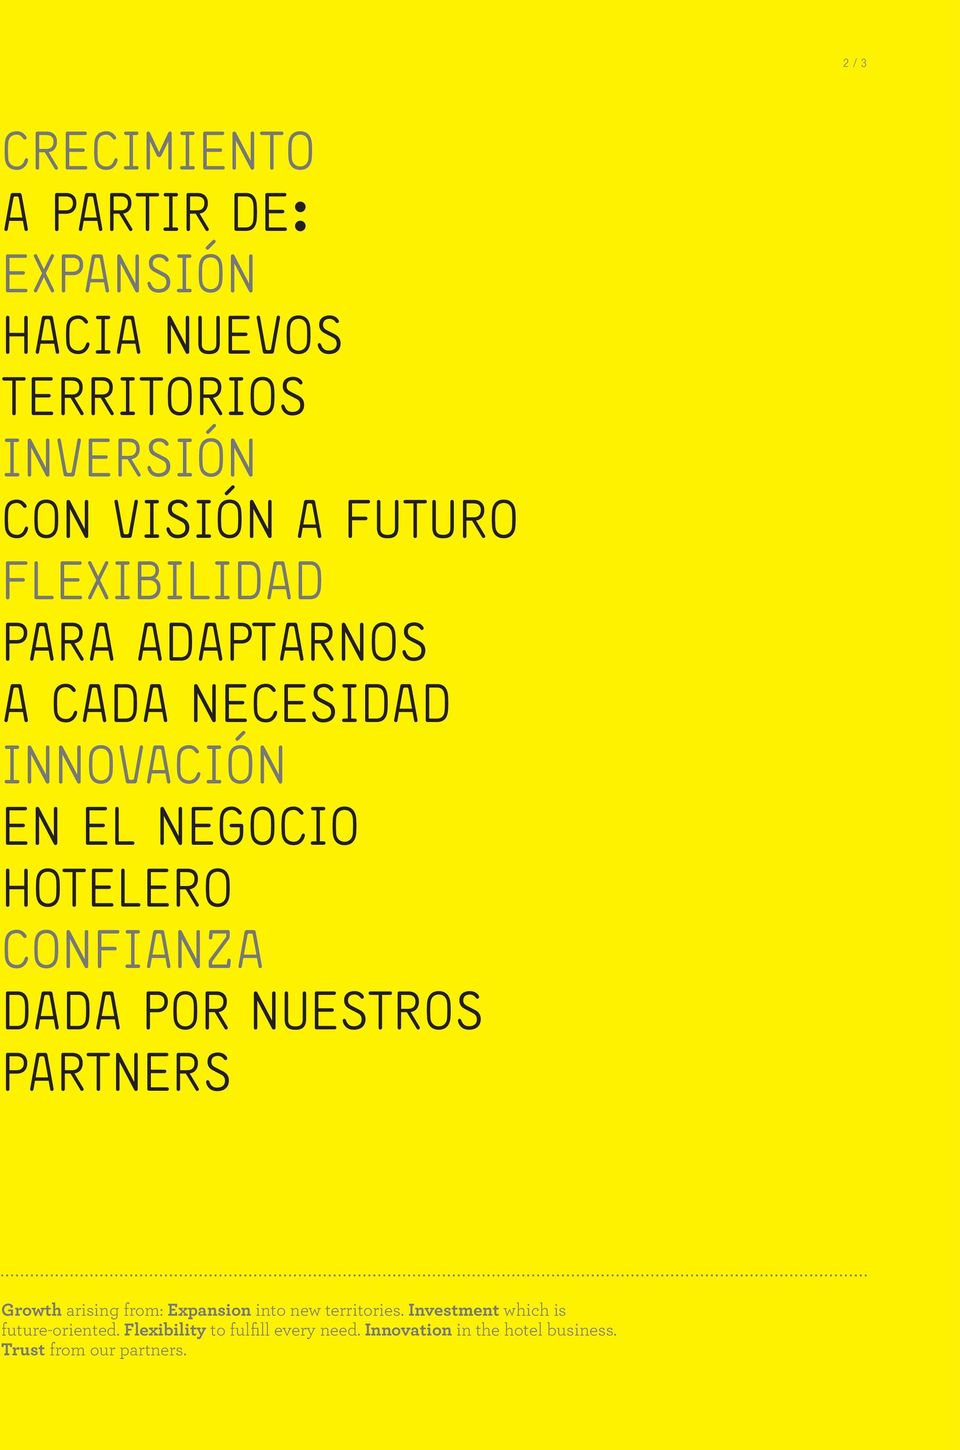 nuestros partners Growth arising from: Expansion into new territories.